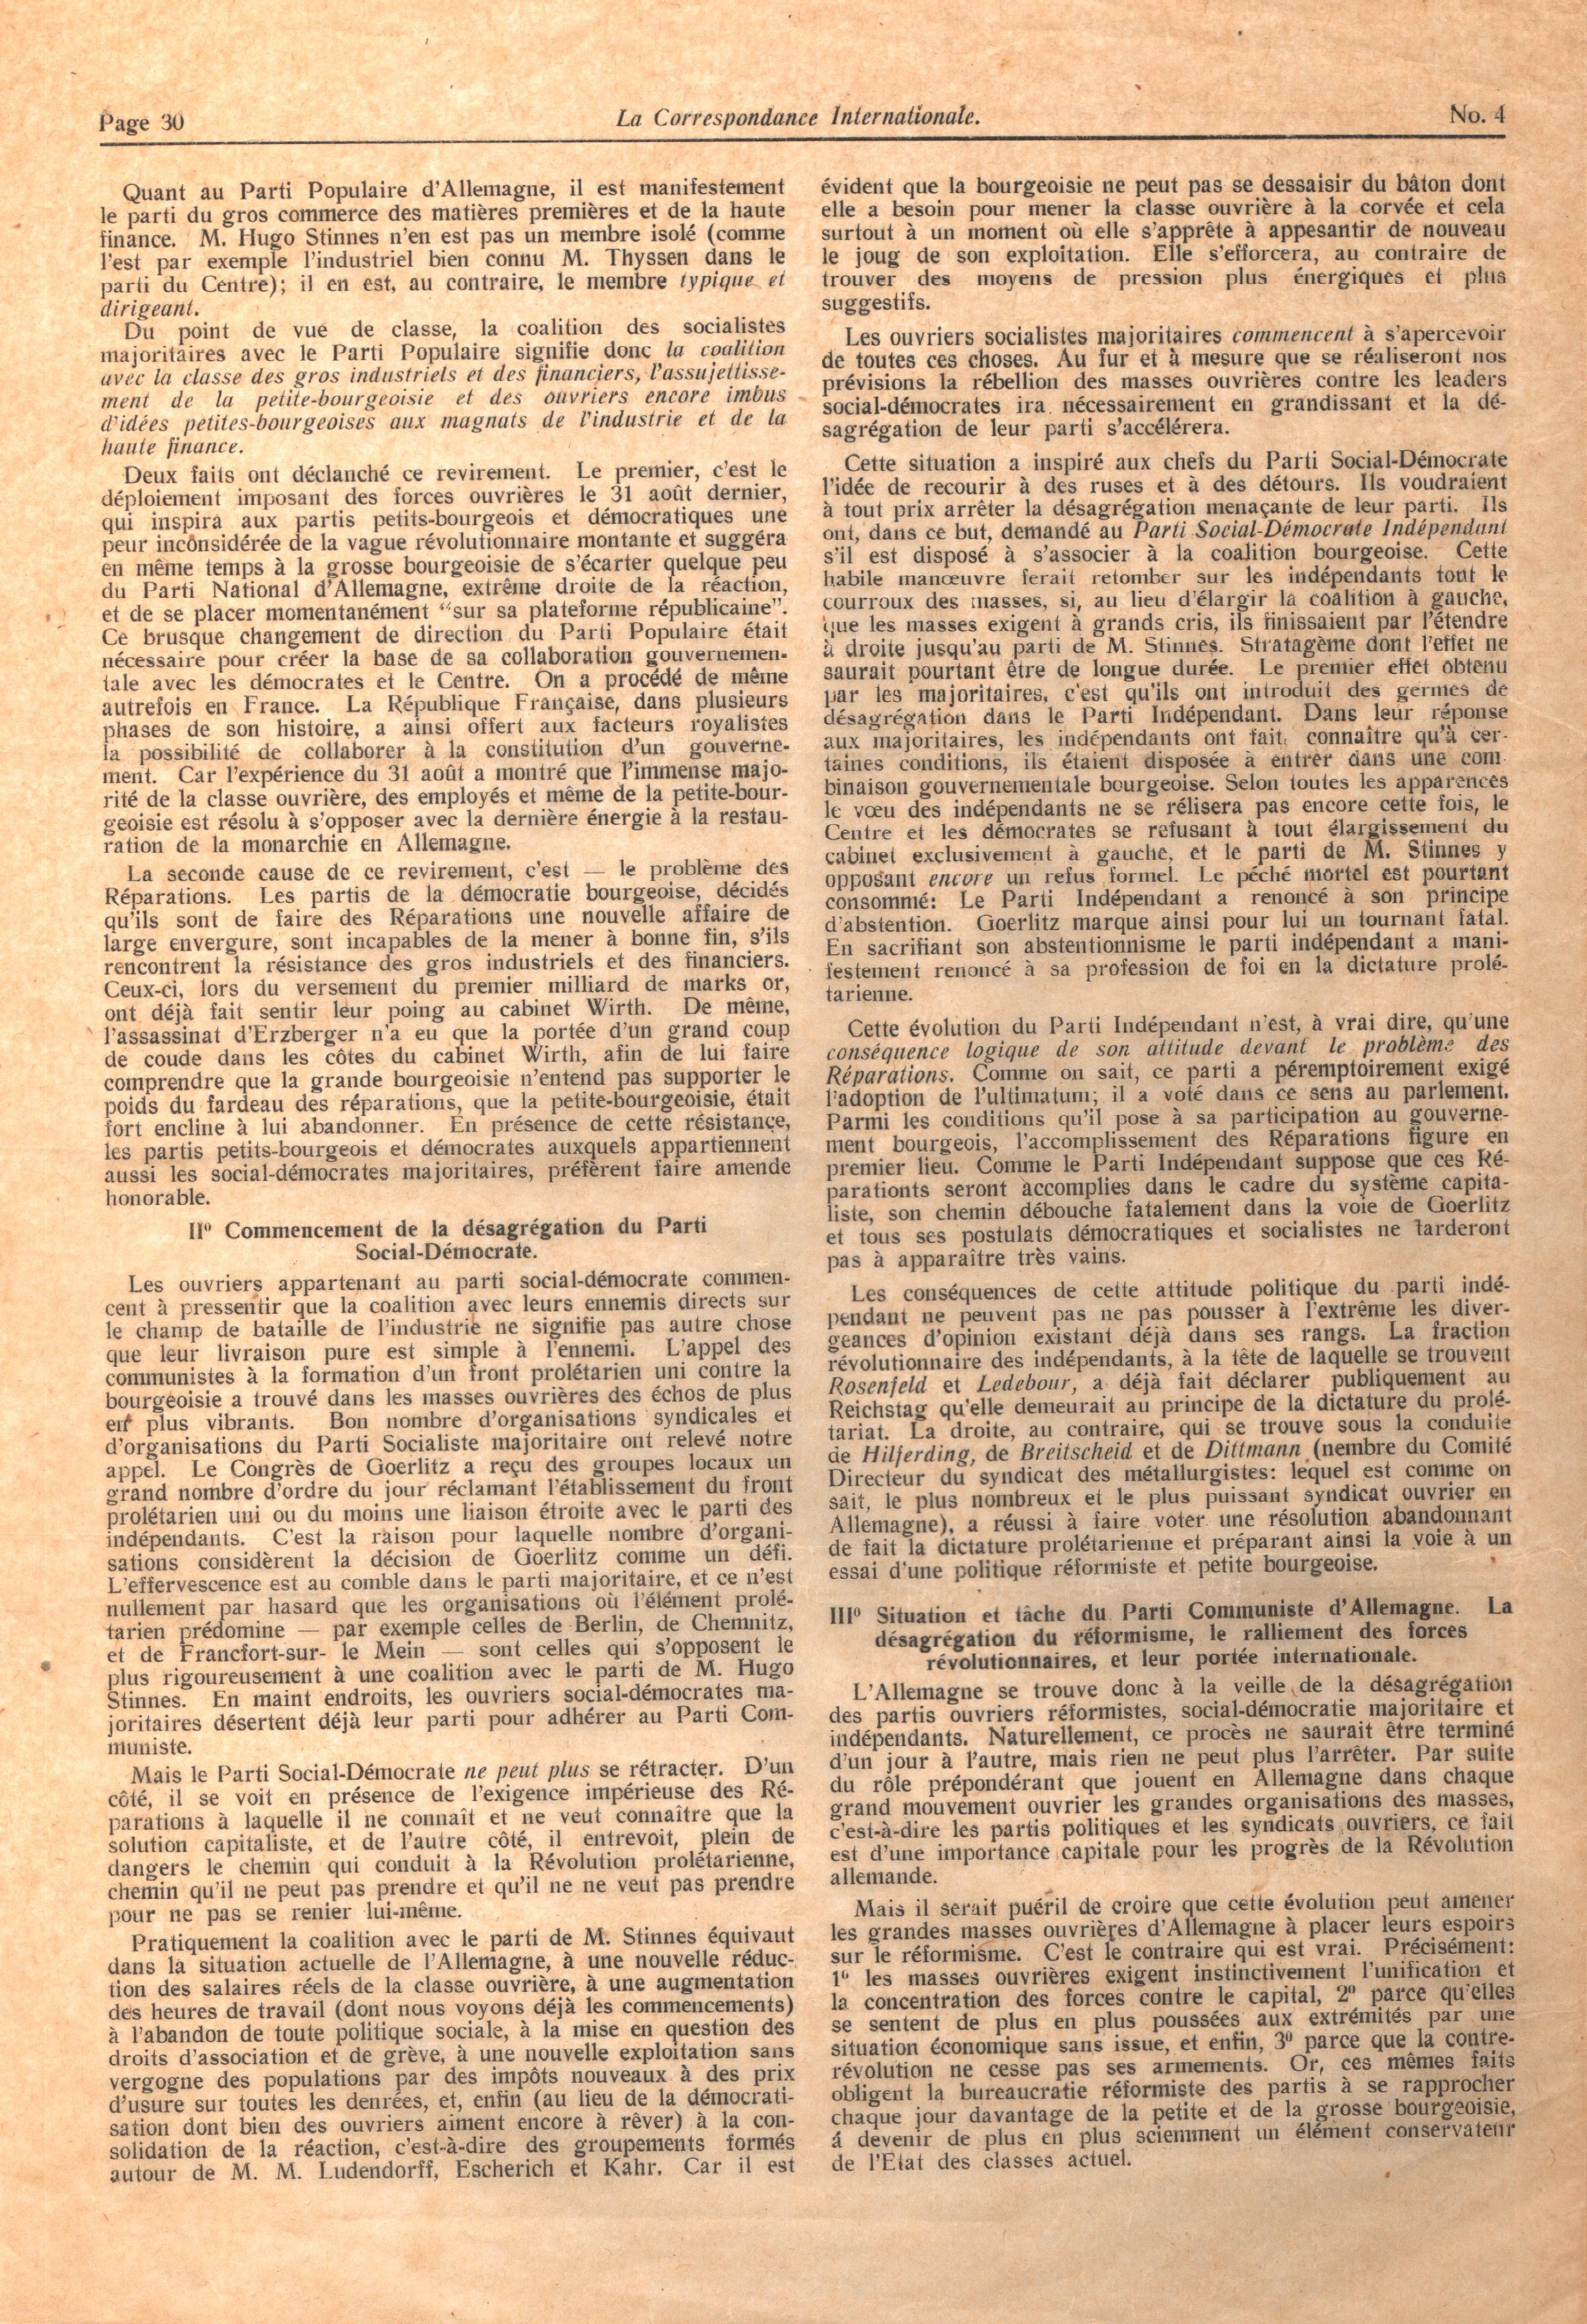 Correspondance Internationale n. 4 - pag. 2